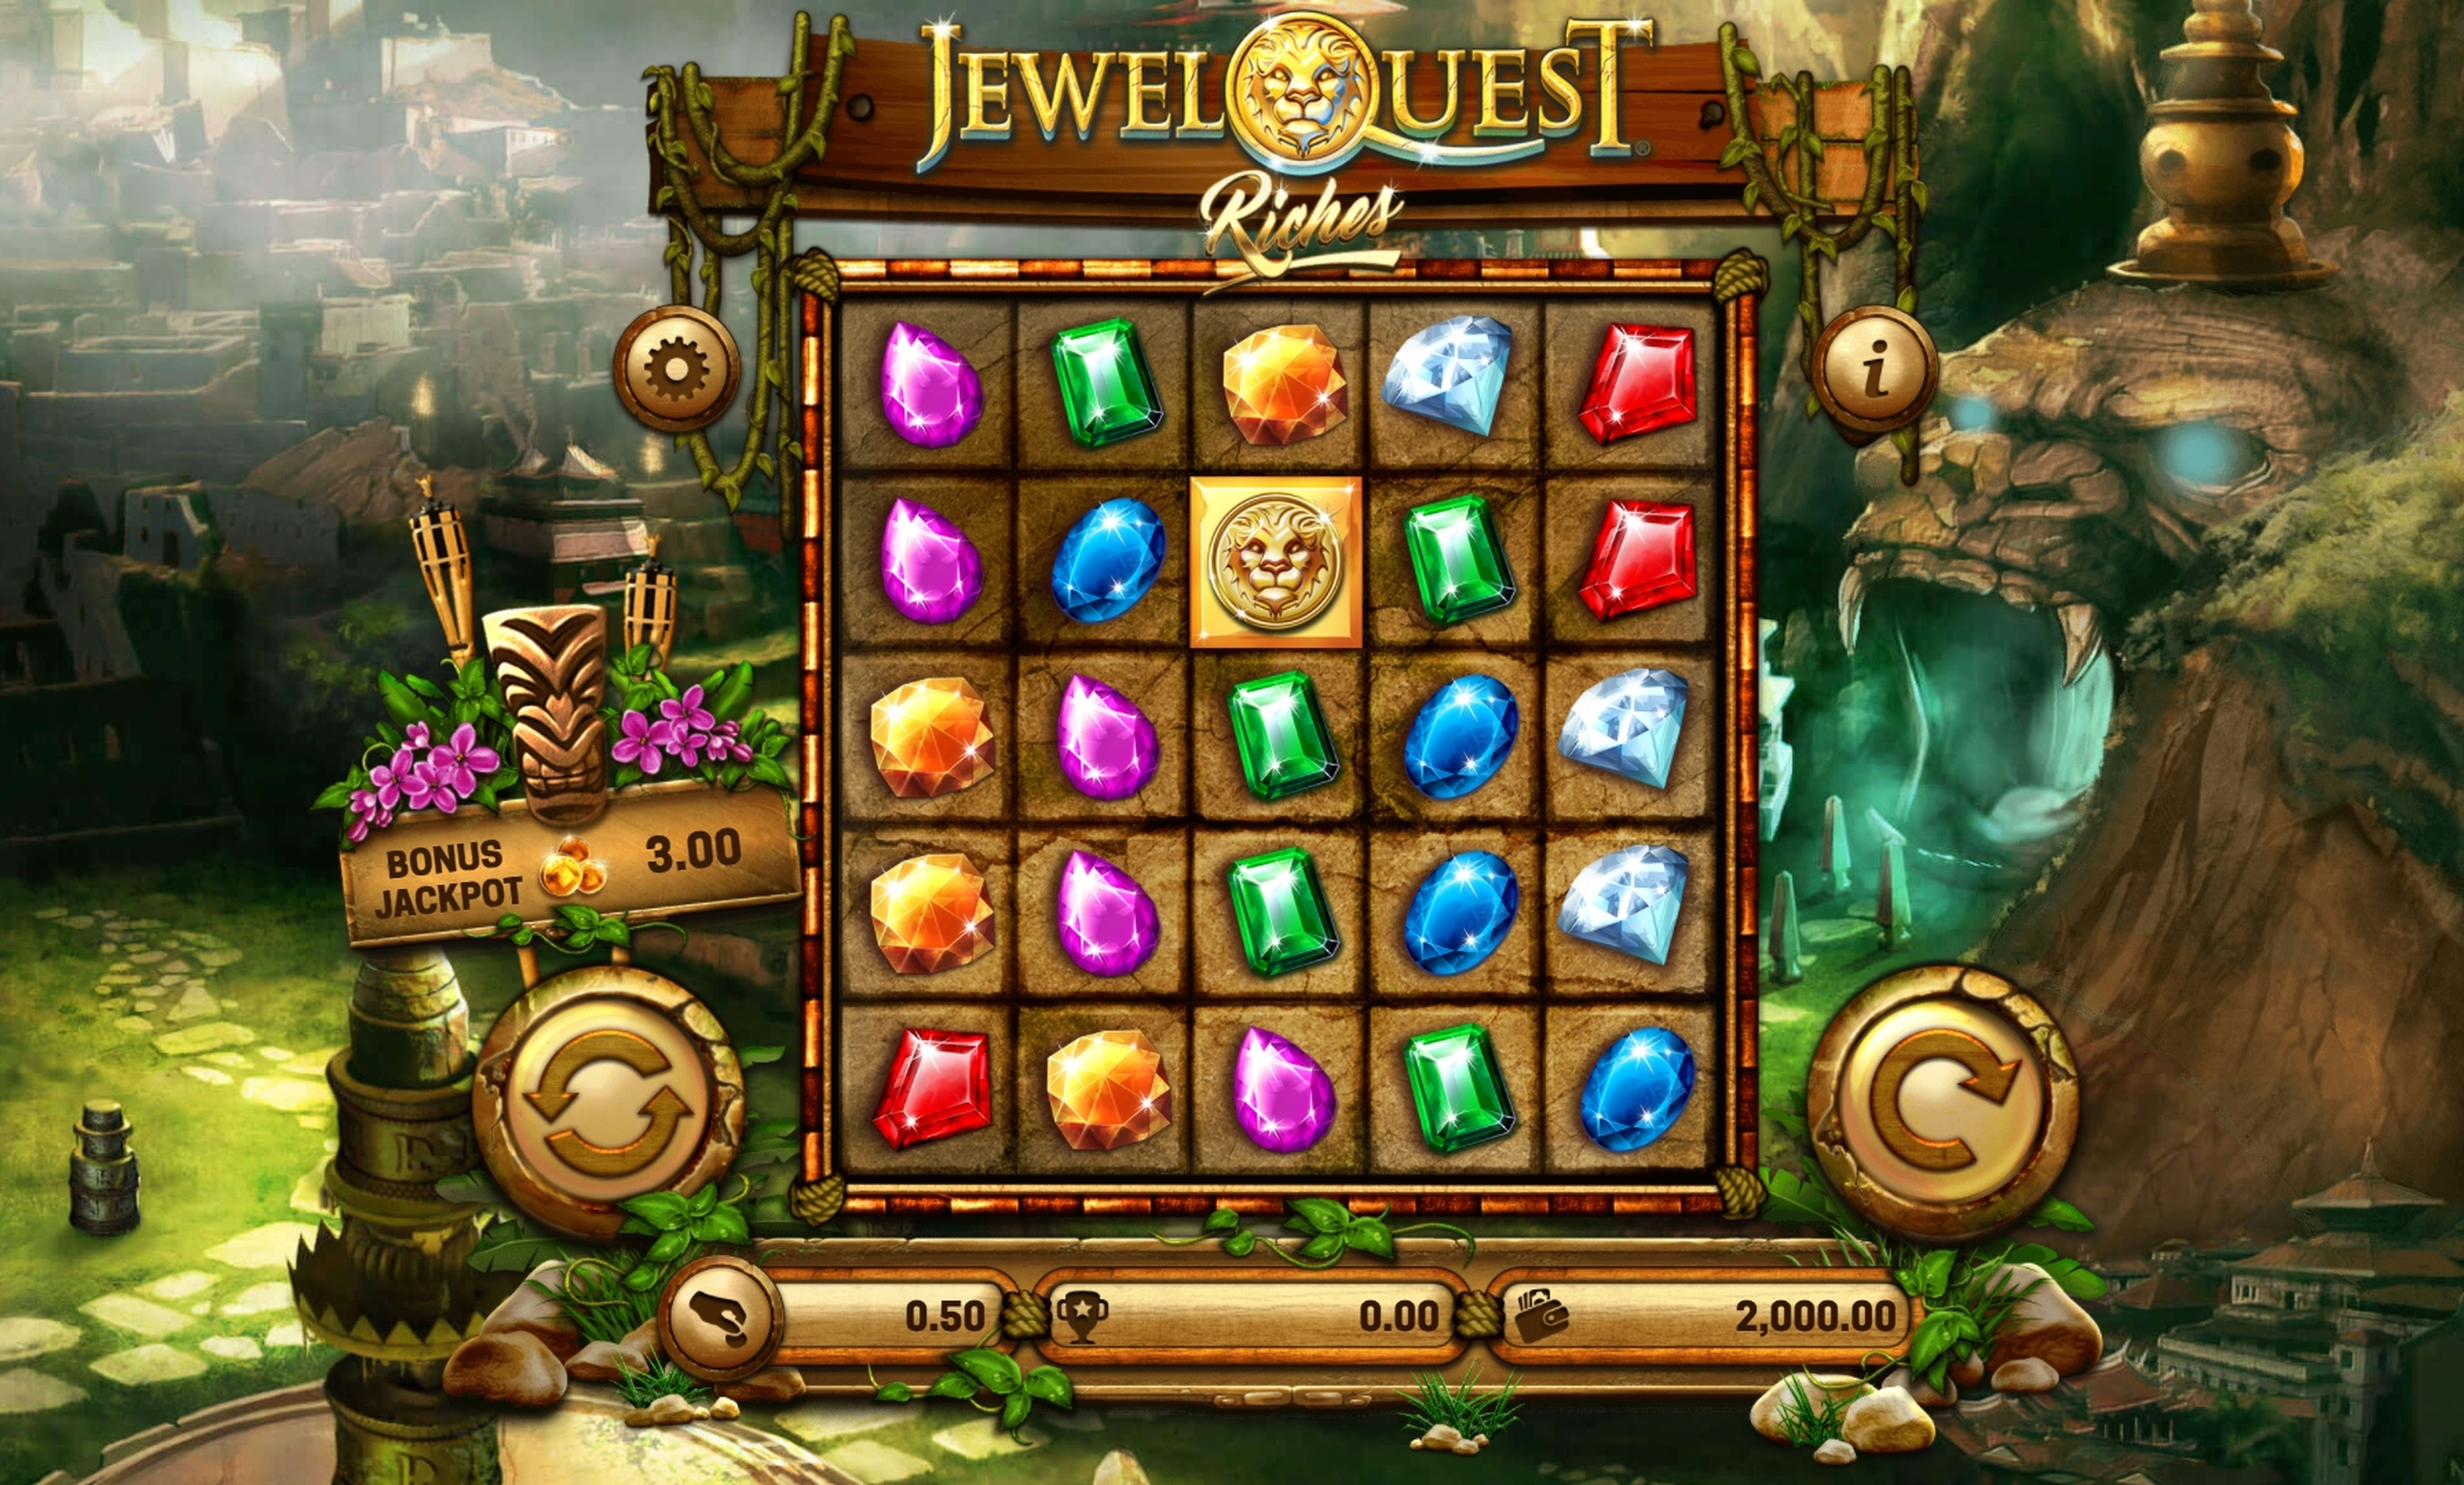 Reels in Jewel Quest Riches Slot Game by Old Skool Studios